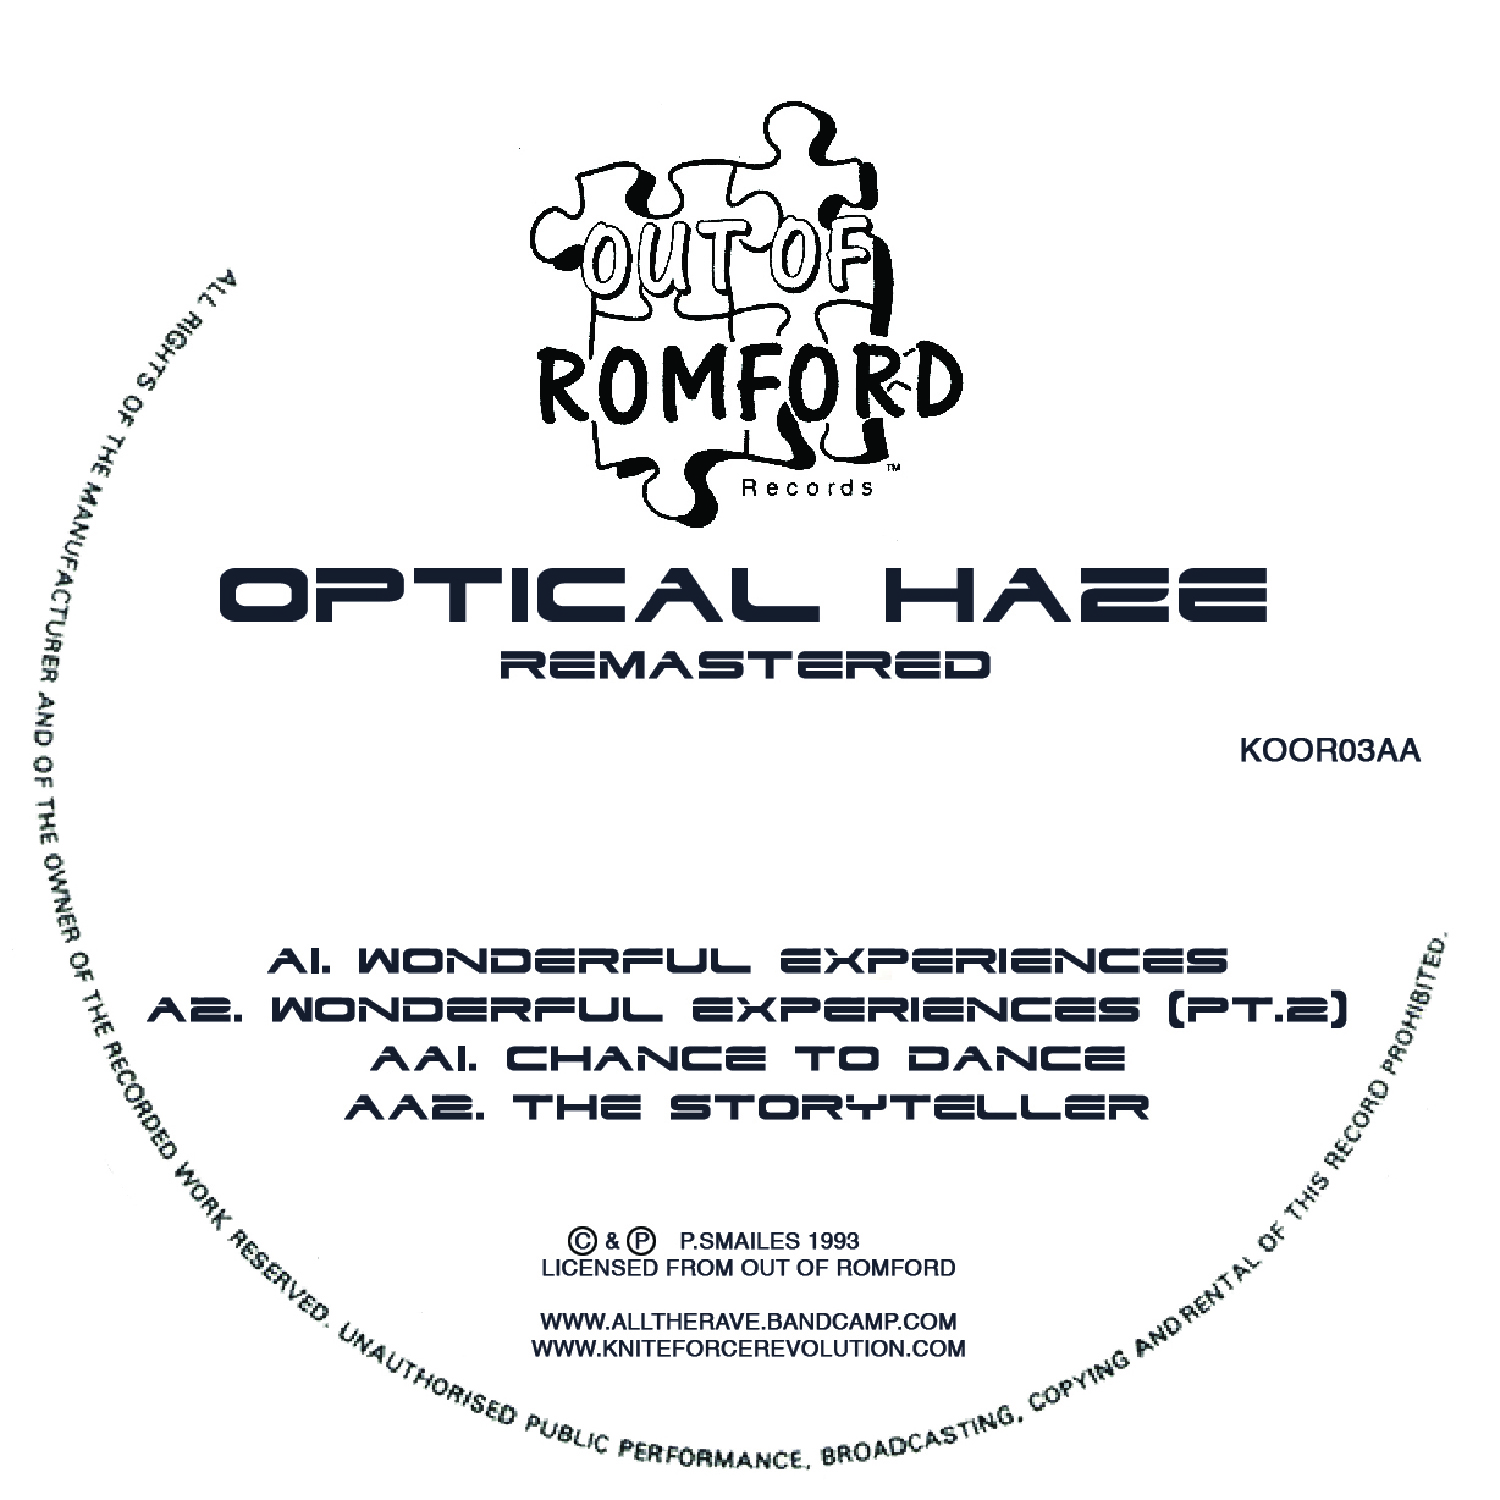 "[KOOR03] Optical Haze - Wonderful Experiences EP (Remastered) (12"" Vinyl + Digital)"